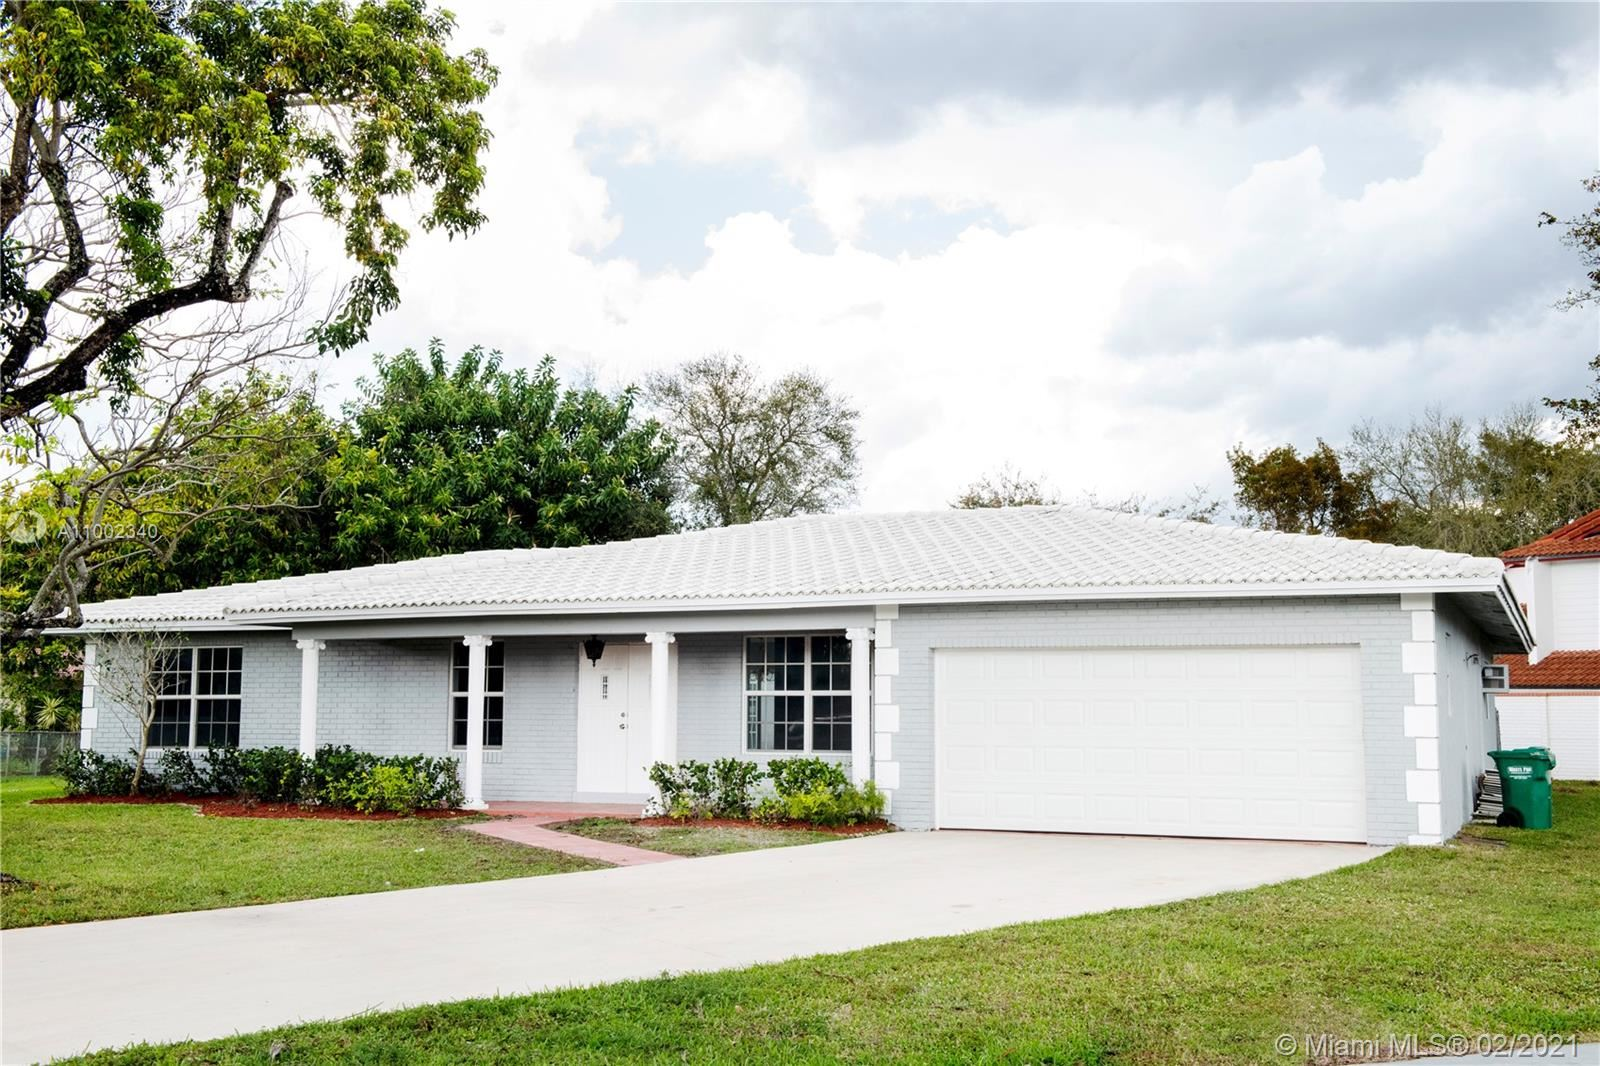 Photo of 9011 NW 23rd St, Coral Springs, FL 33065 (MLS # A11002340)